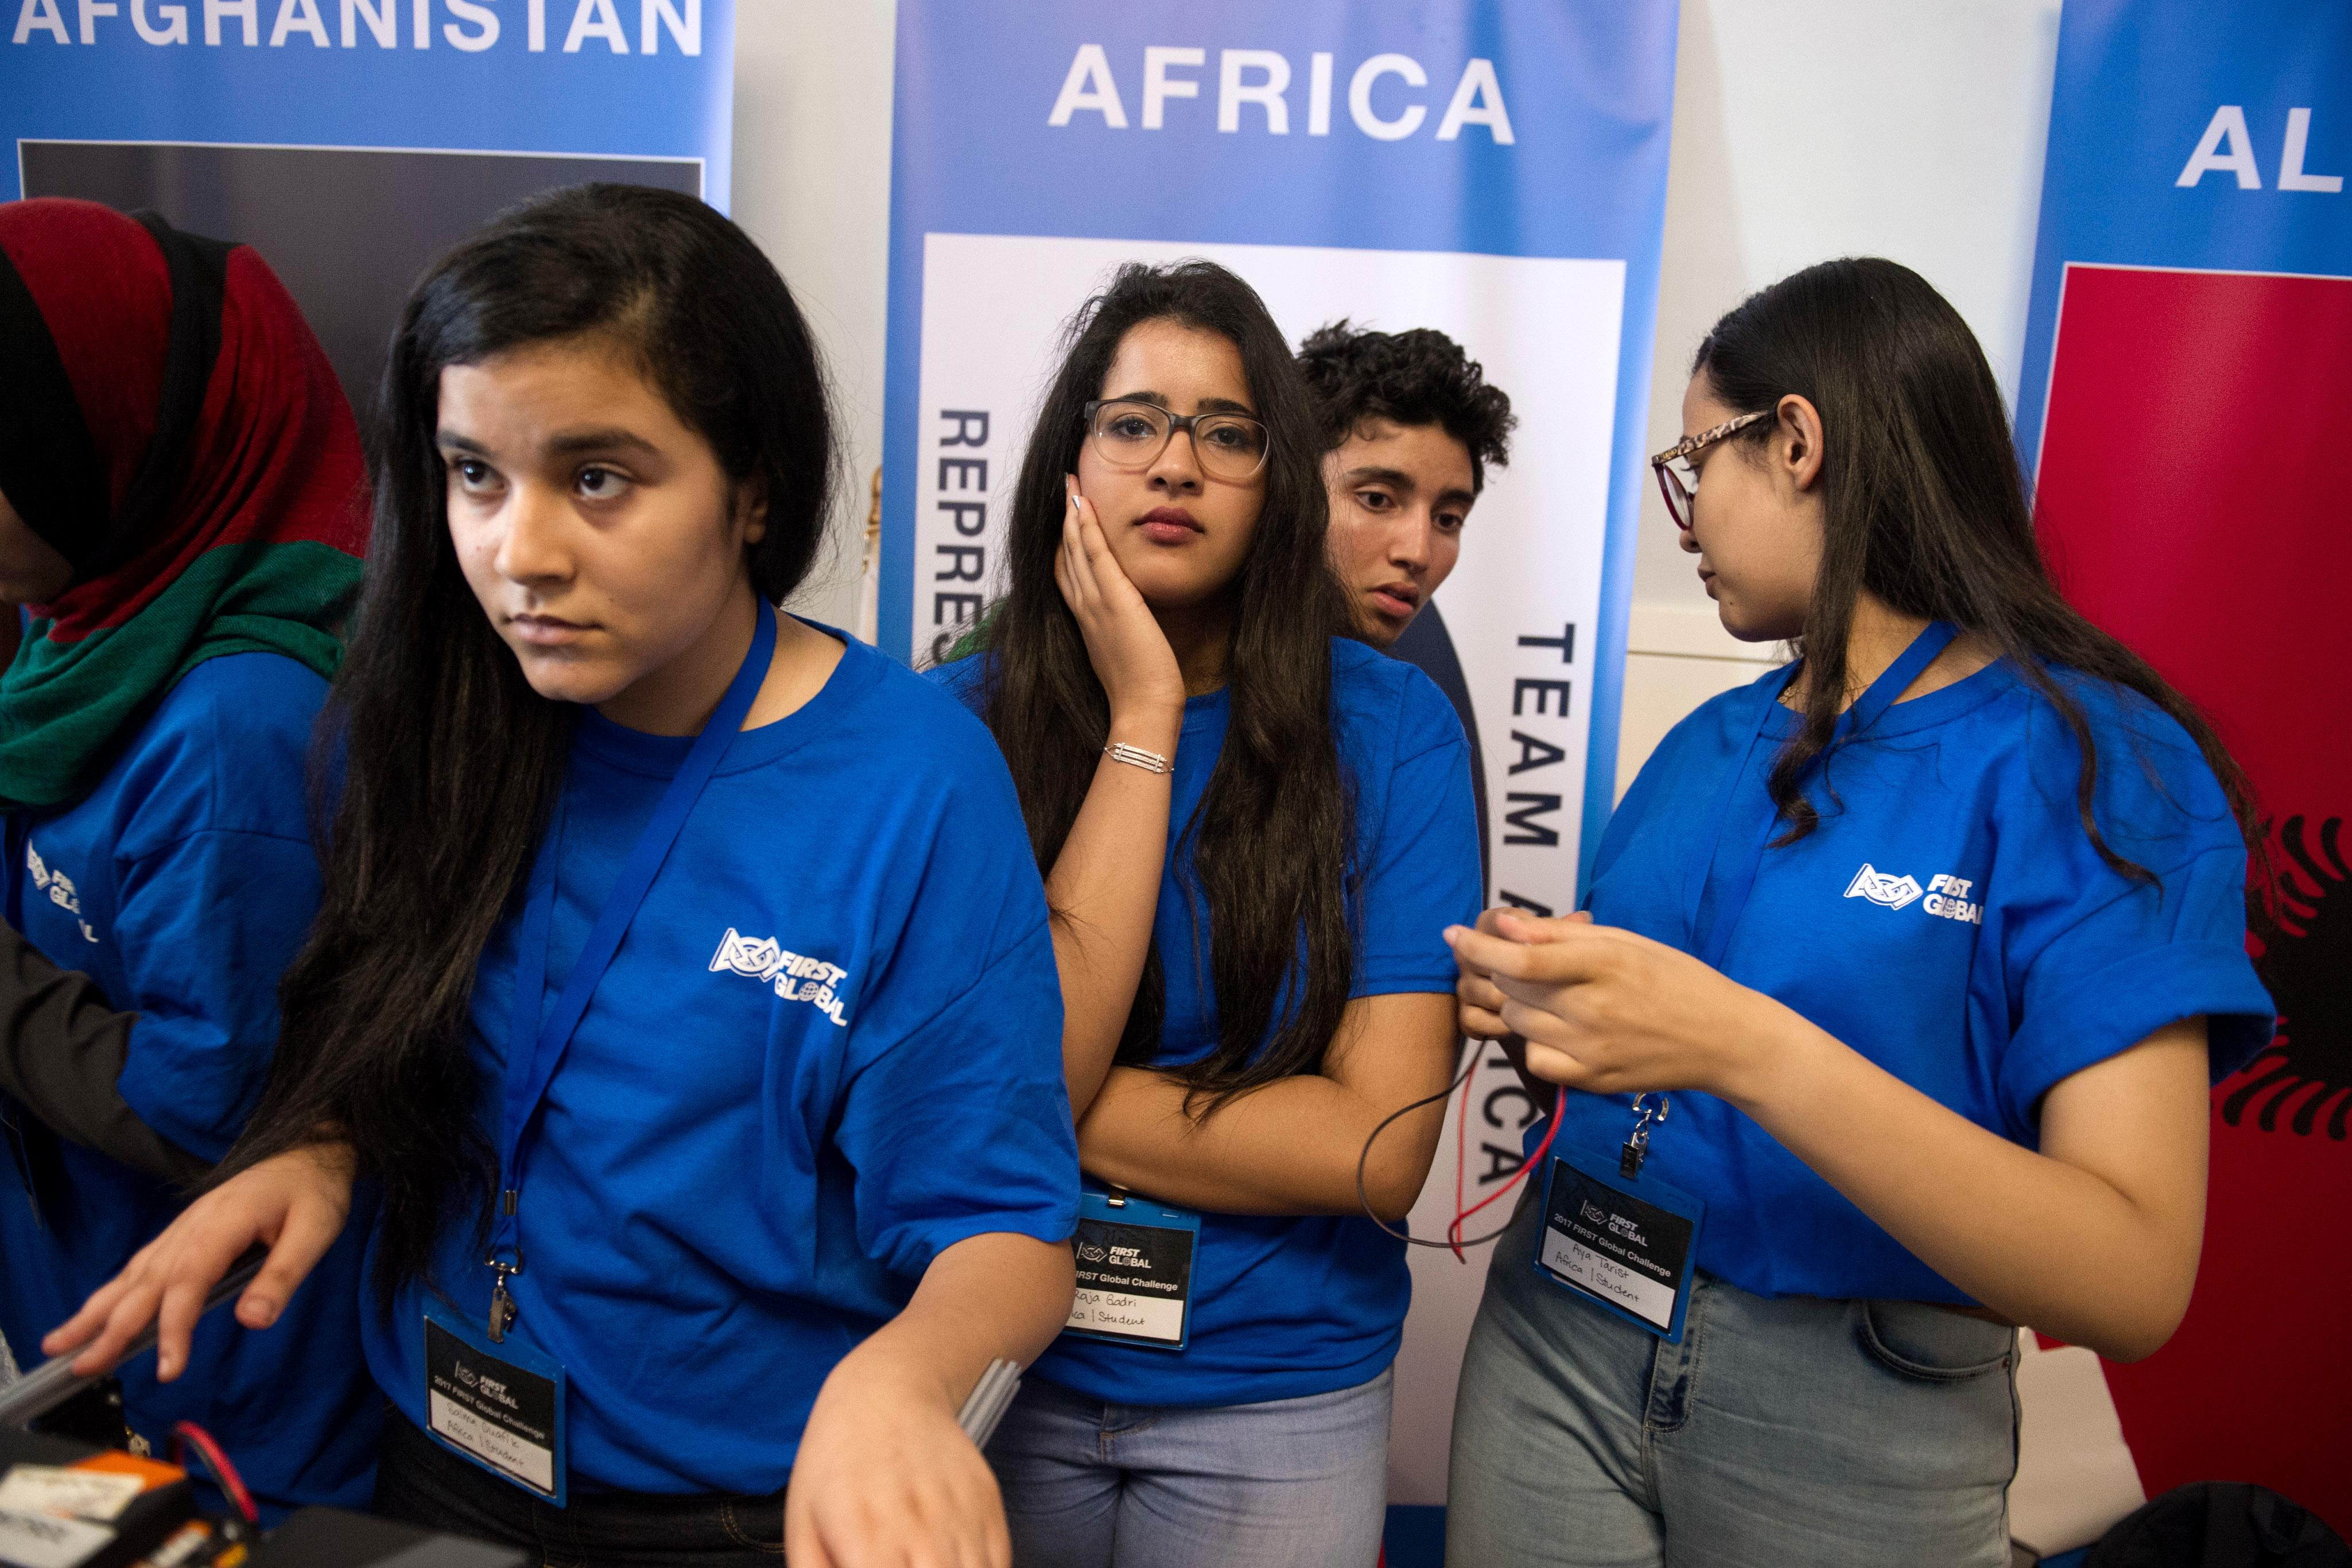 Africa team members Salma Ouafik, left, Raja Godri, center, and Aya Tarist, right, wait for the opening ceremony for the FIRST Global Challenge 2017, in Washington, Sunday, July 16, 2017. They will be competing against entrants from more than 150 countries in the FIRST Global Challenge. It's the first annual robotics competition designed to encourage youths to pursue careers in math and science.  (AP Photo/Cliff Owen)